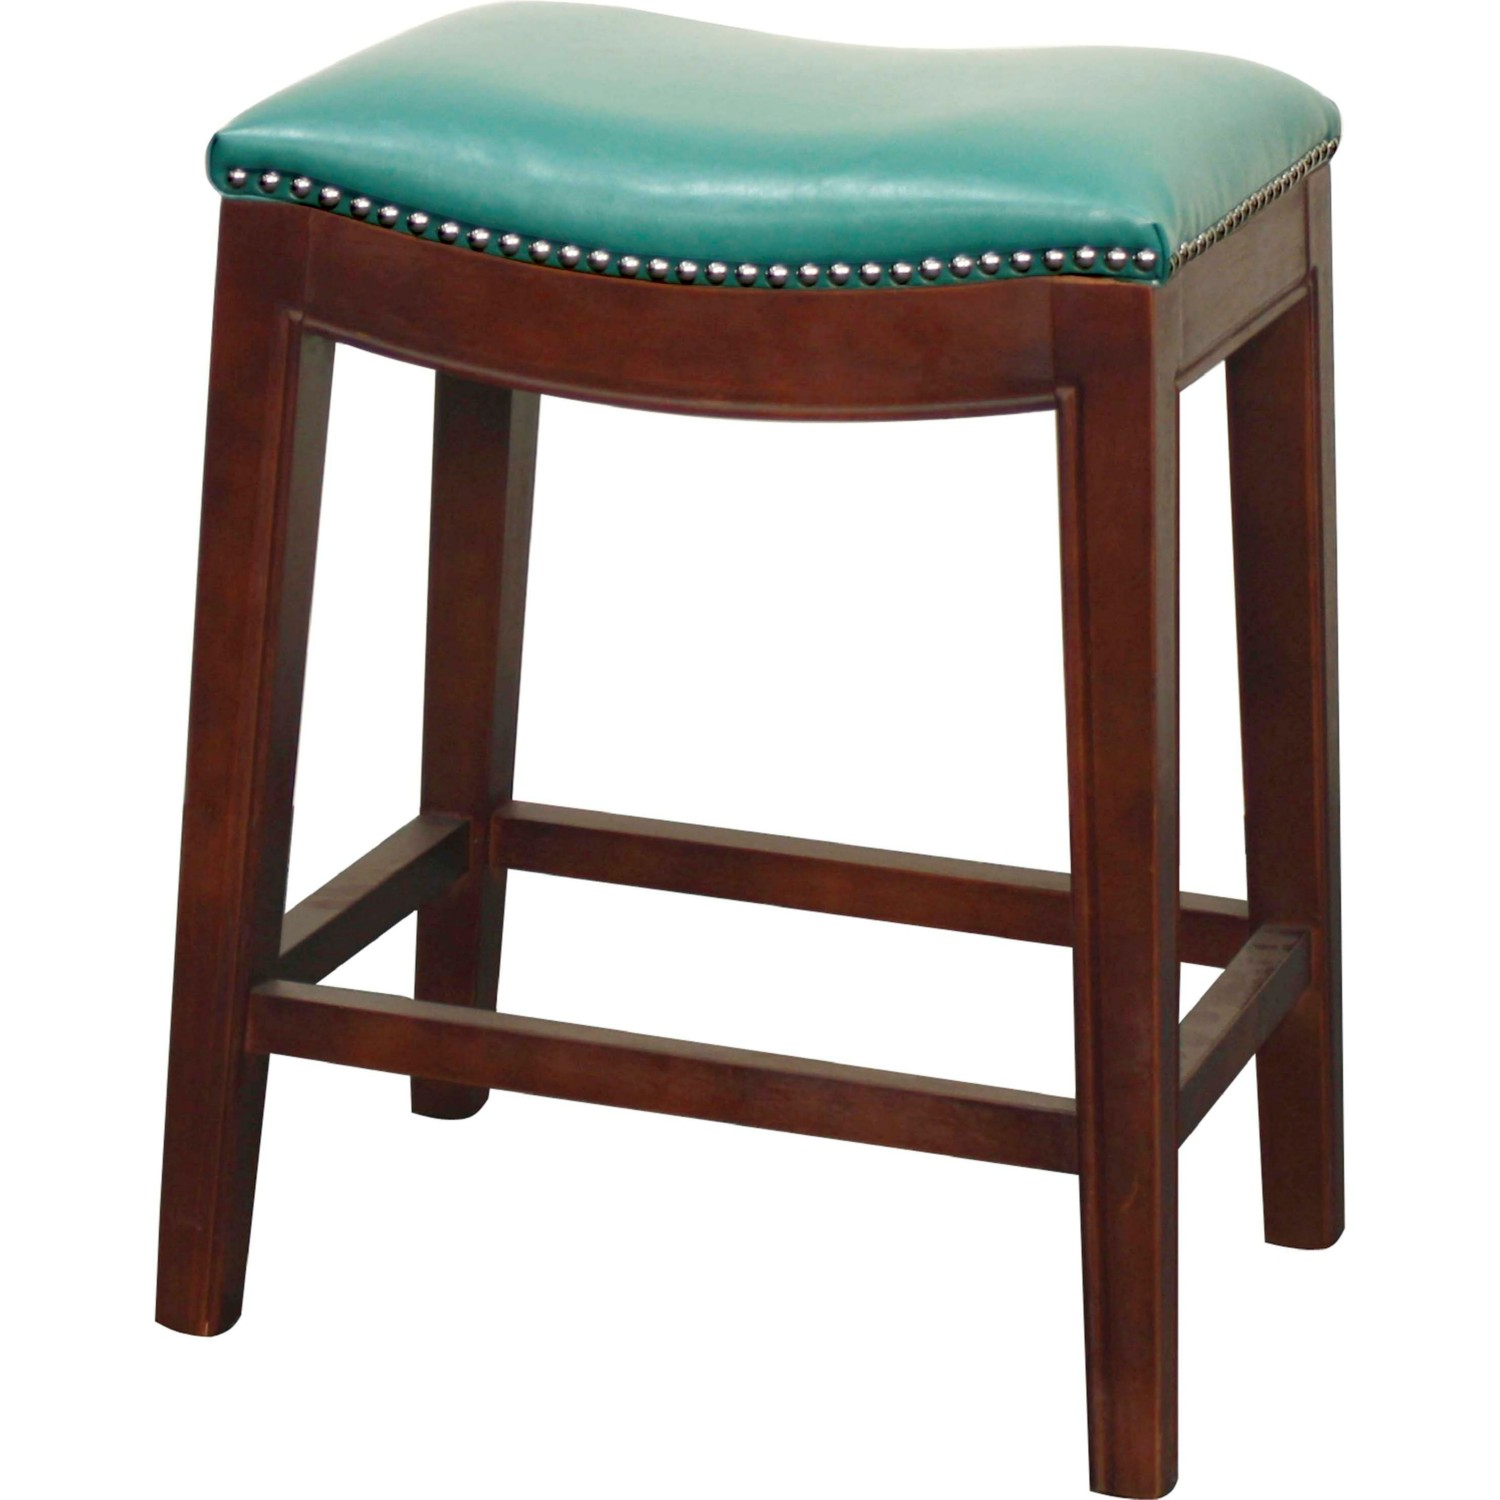 New Pacific Direct 358625B 323 Elmo Counter Stool in  : NPD 358625B 323 from www.dynamichomedecor.com size 1500 x 1500 jpeg 179kB